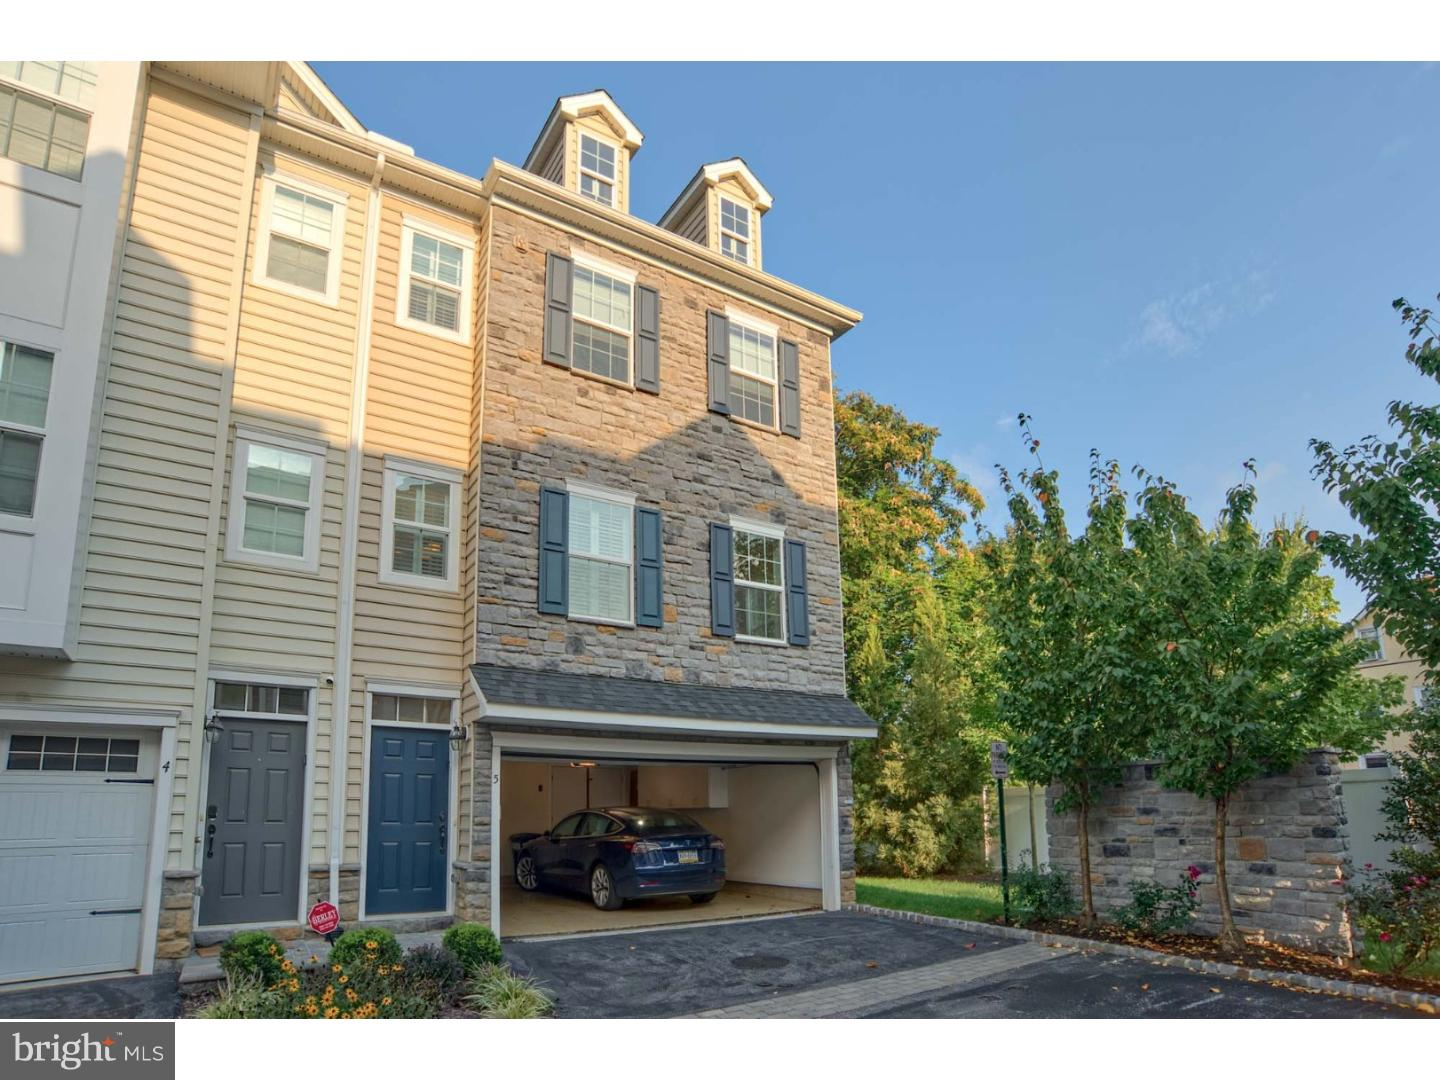 11 S Wyoming Avenue #5 Ardmore, PA 19003